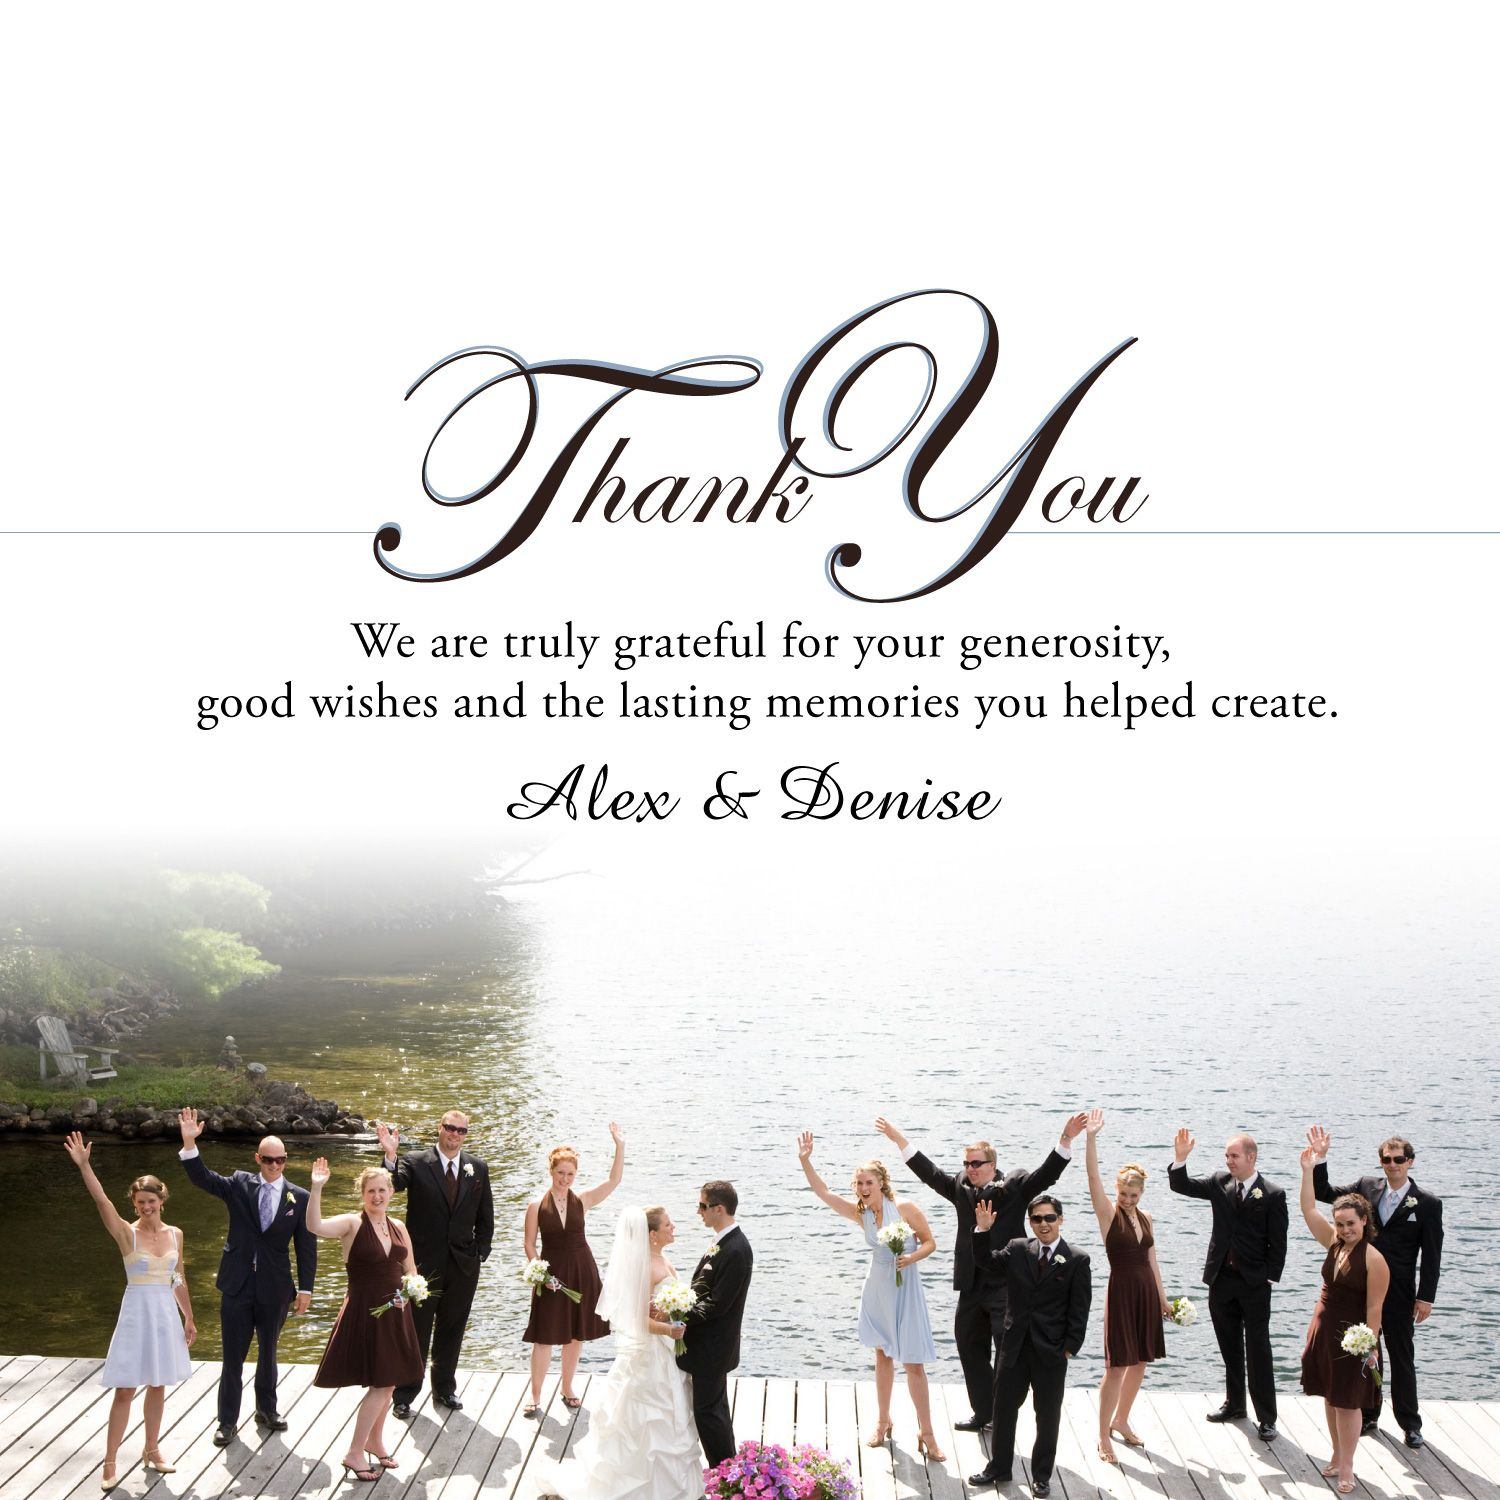 thank you cards wedding Wedding Thank You Cards in a hurry